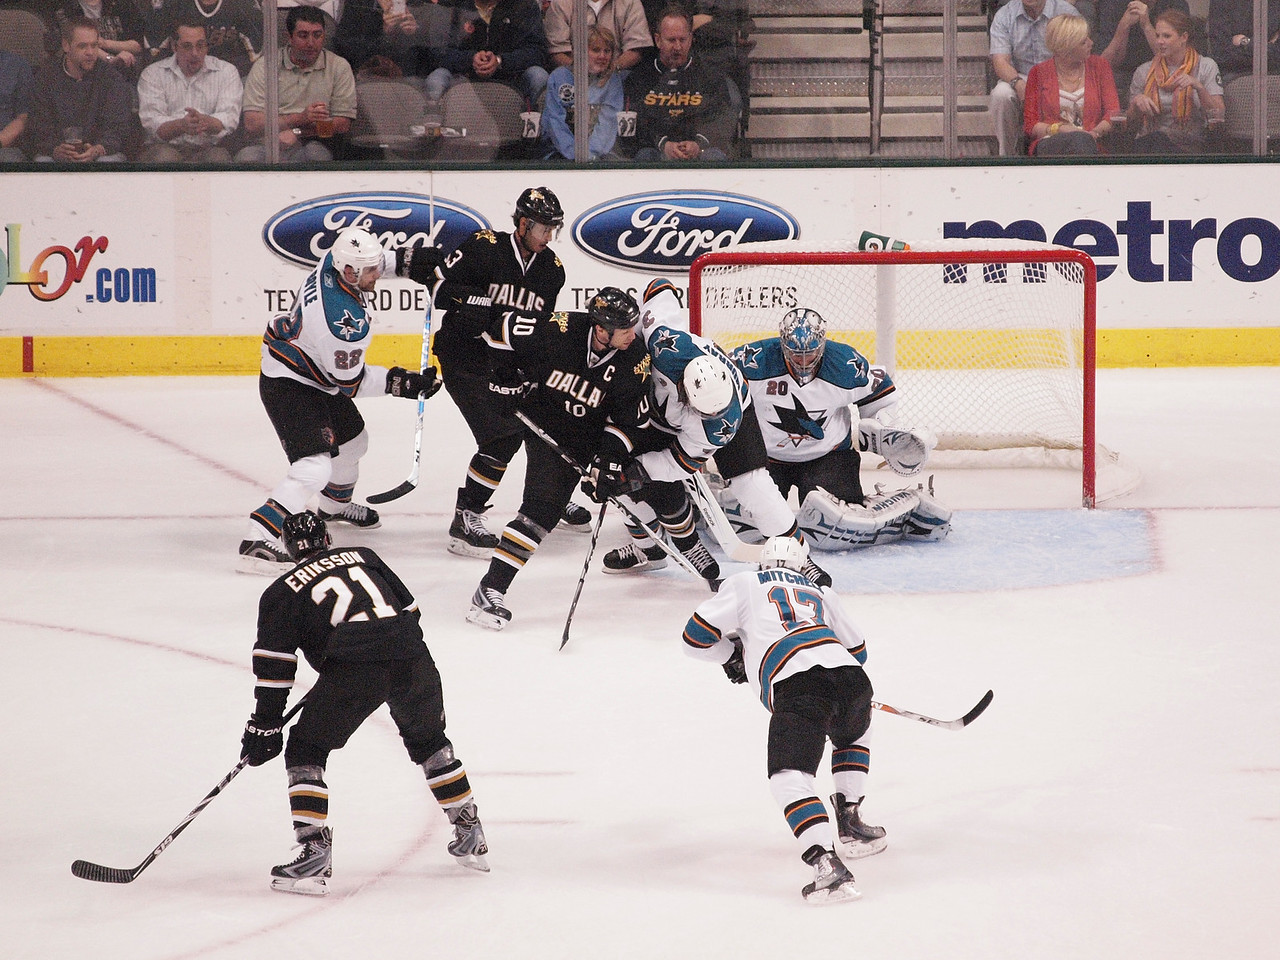 Dallas Stars vs. San Jose Sharks, March 31, 2010